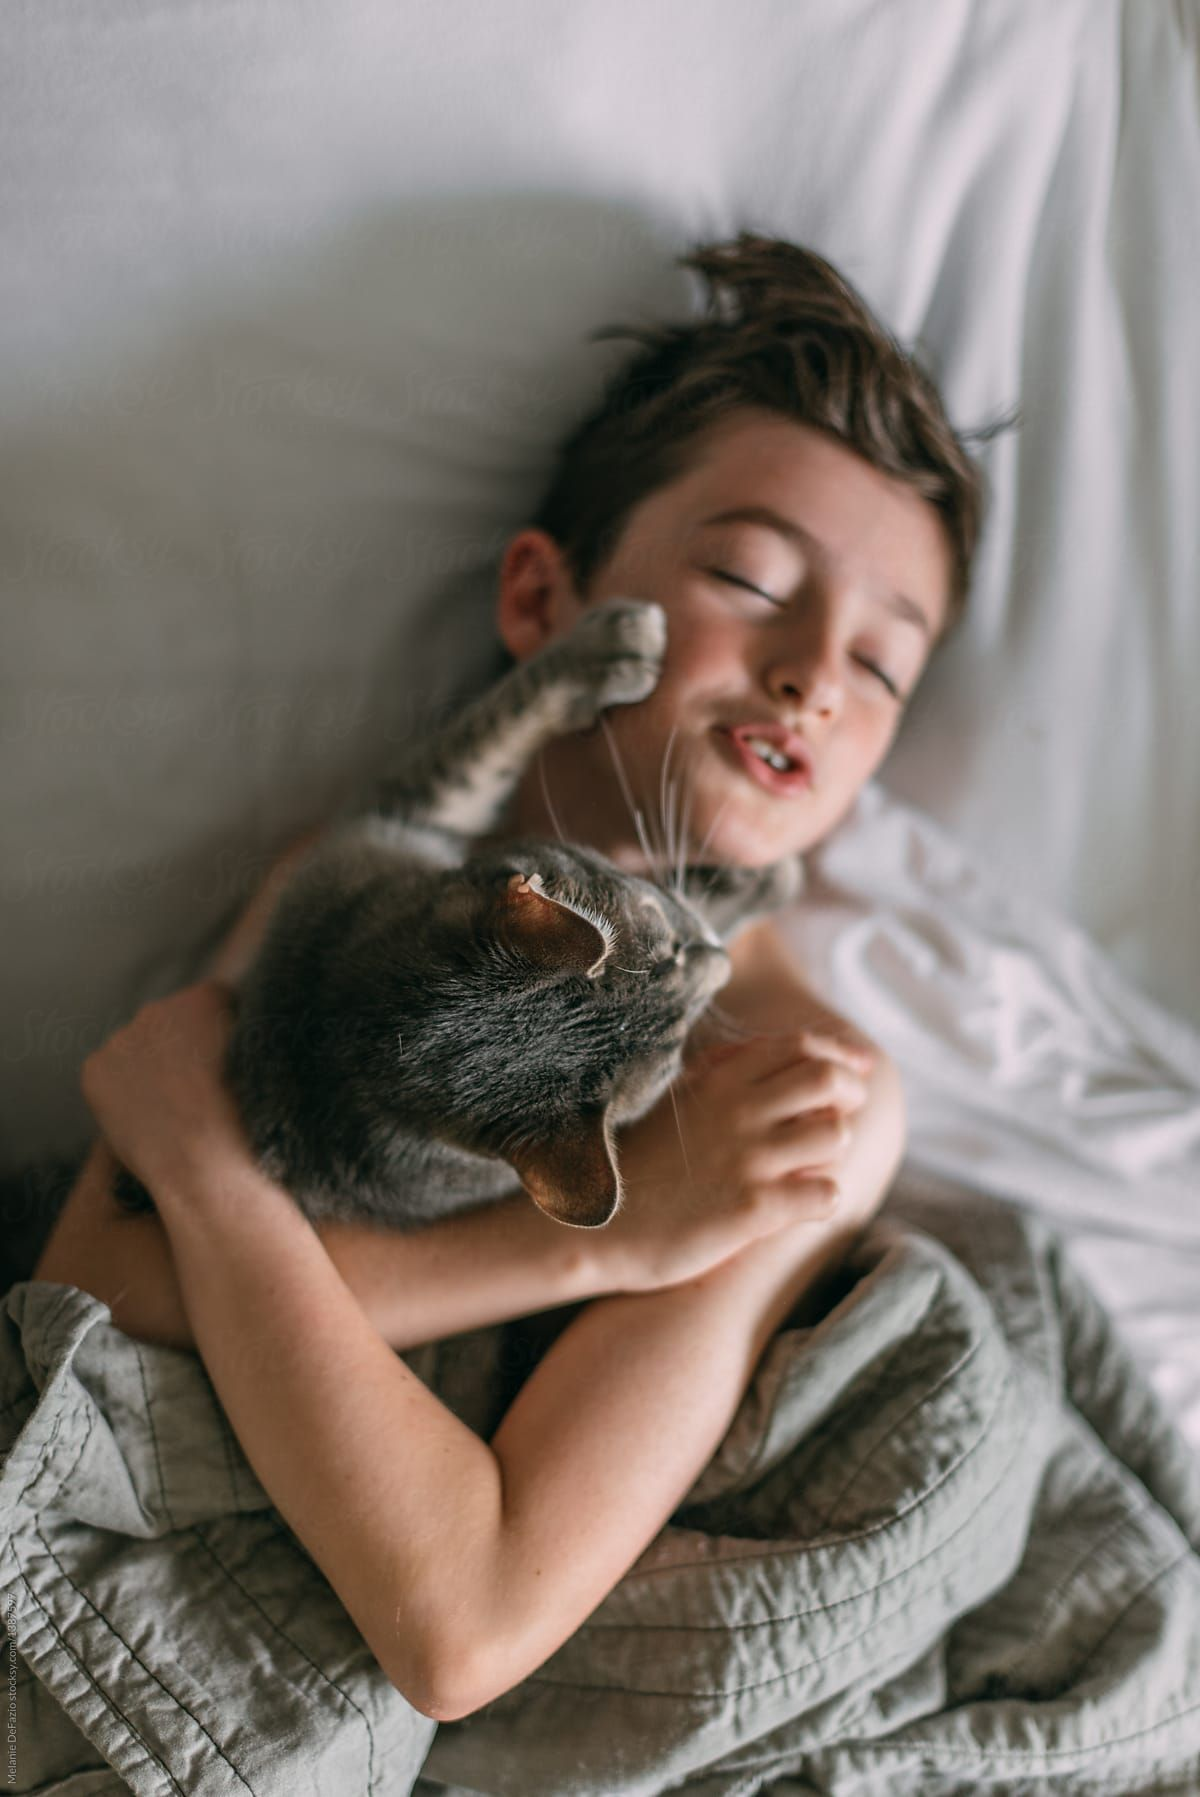 A young boy snuggling with his cat in bed on a lazy day